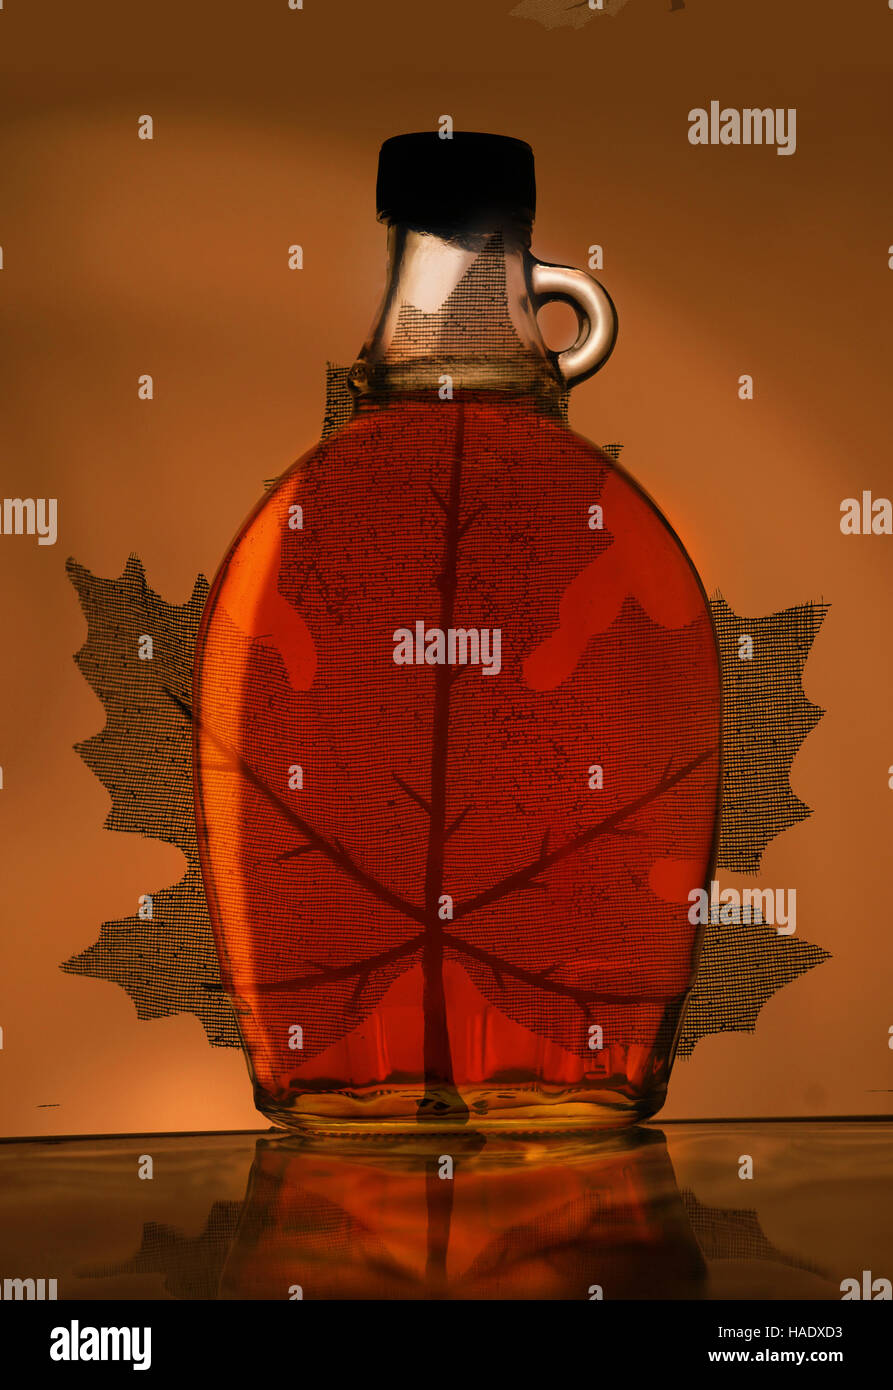 A maple leaf makes a background for a bottle of maple syrup. - Stock Image